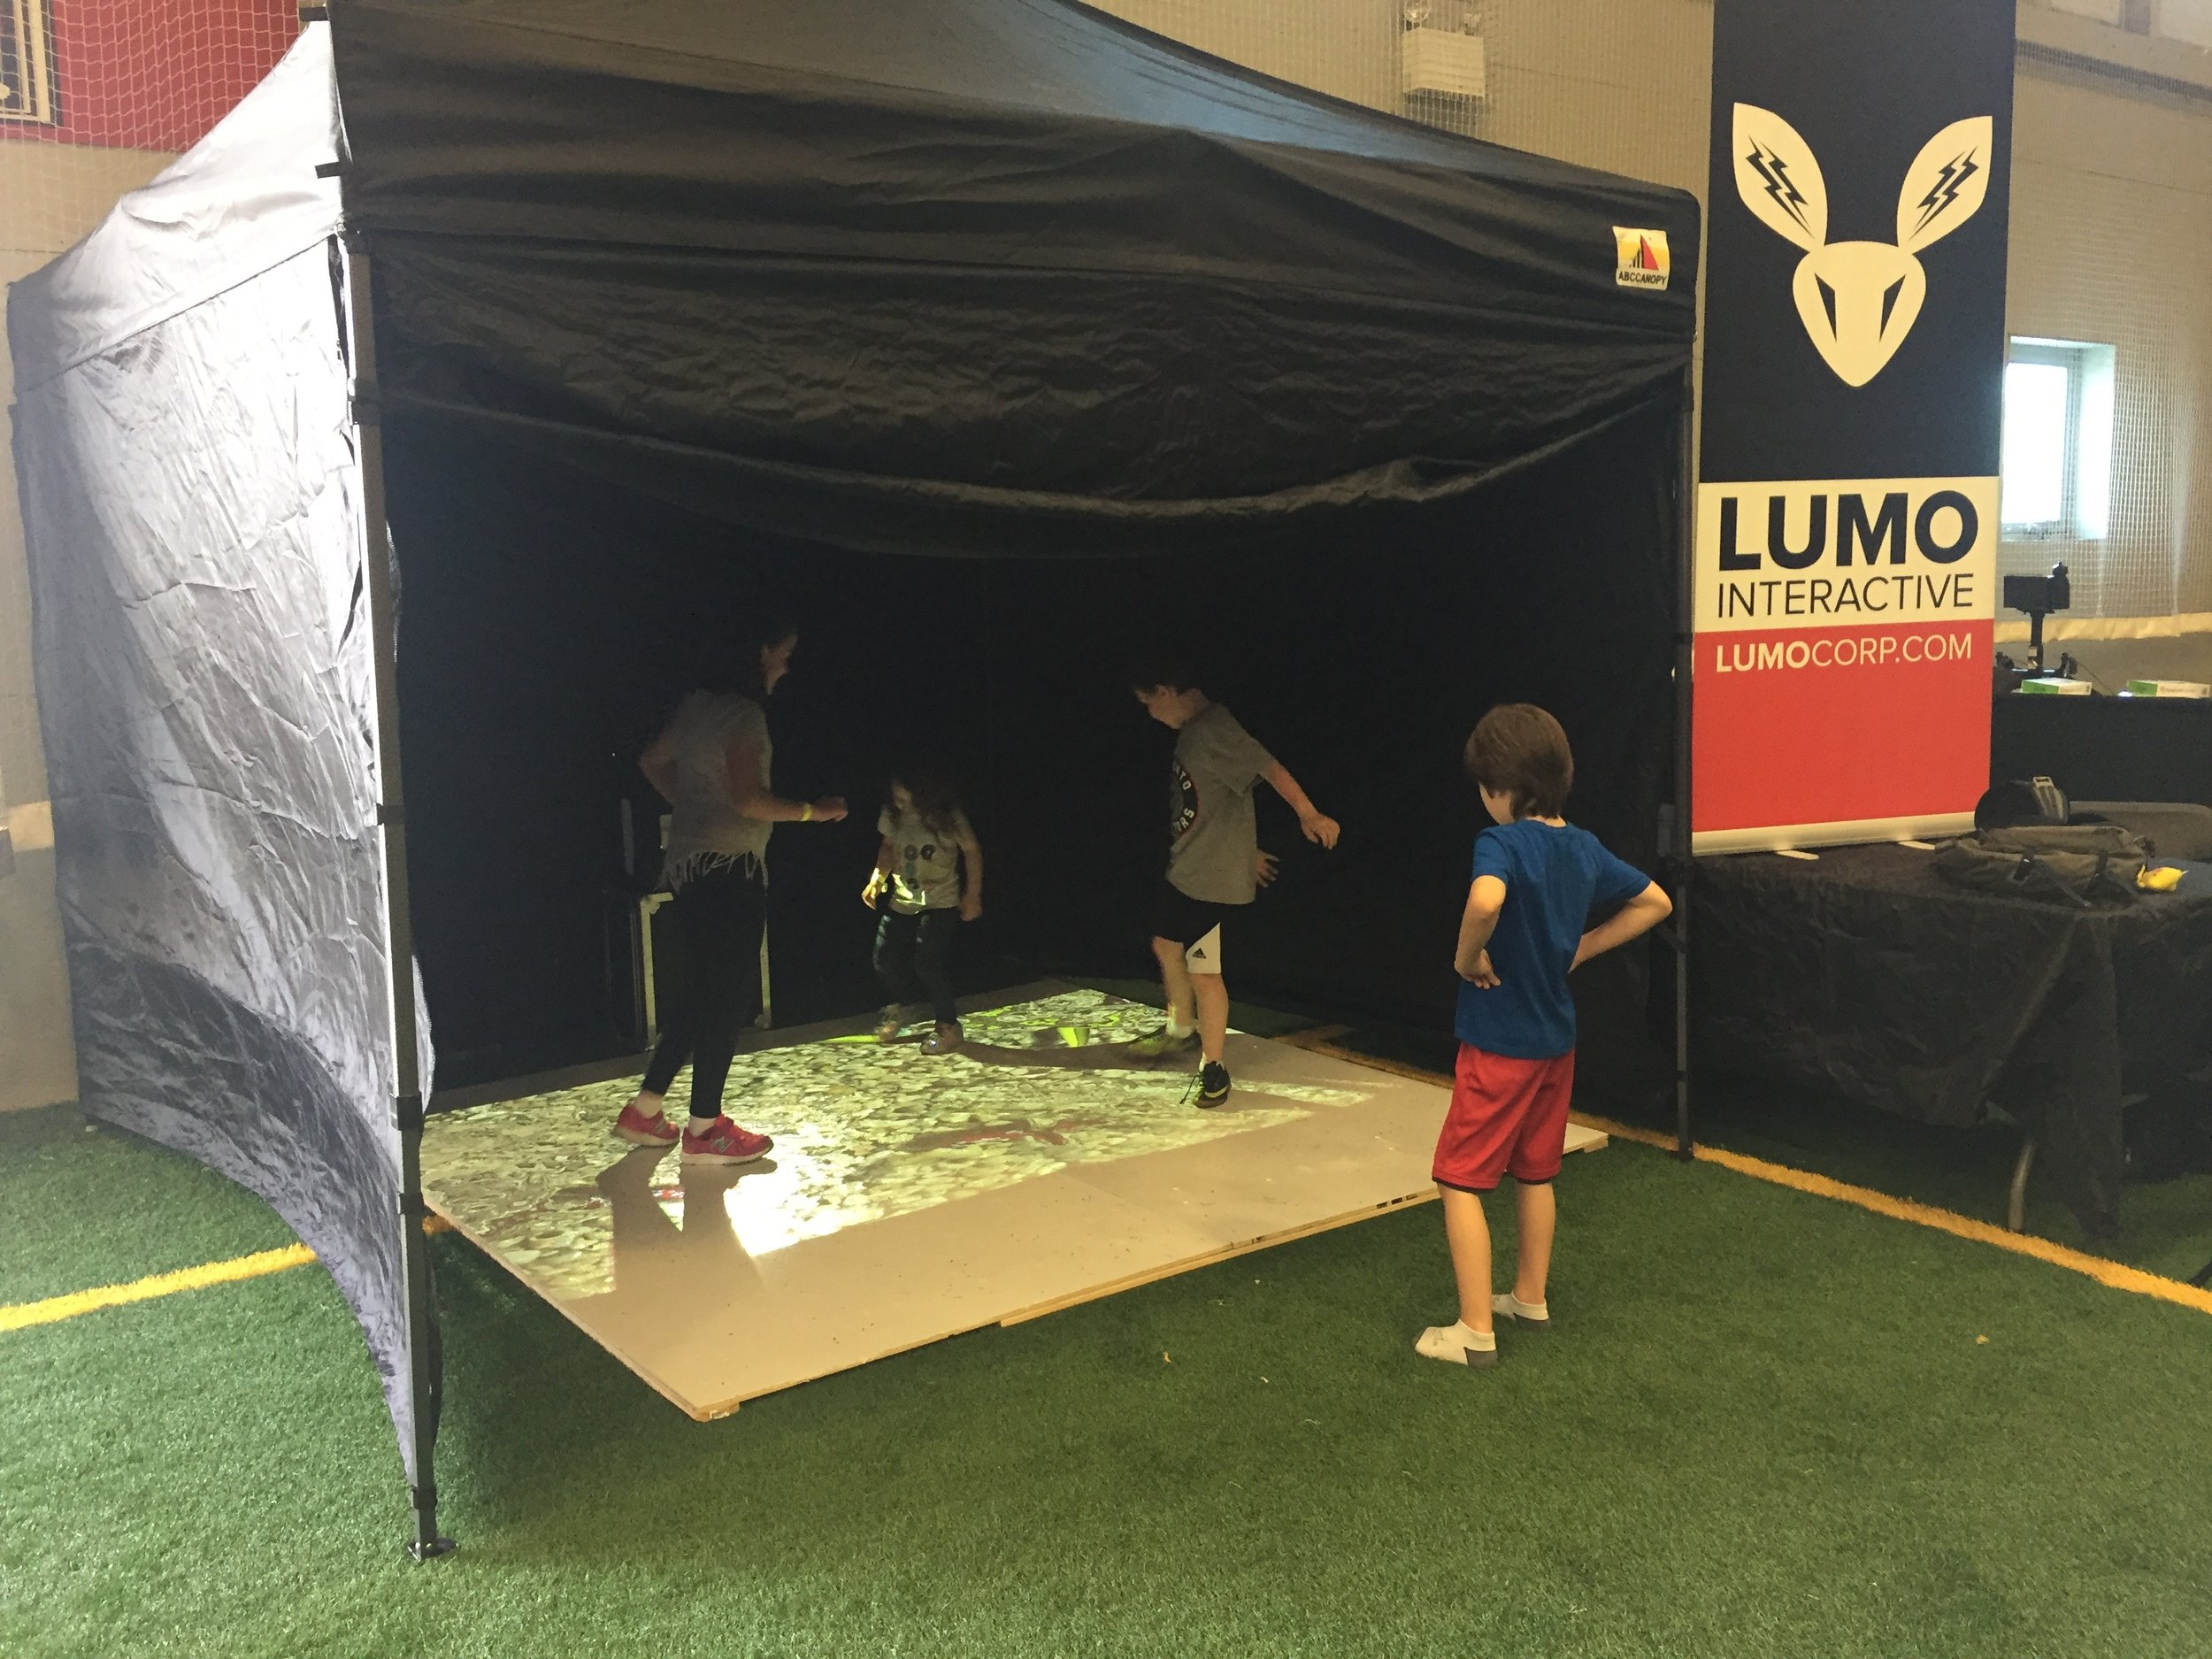 Lumo Play pop-up interactive floor installation at a special needs fundraiser in Toronto